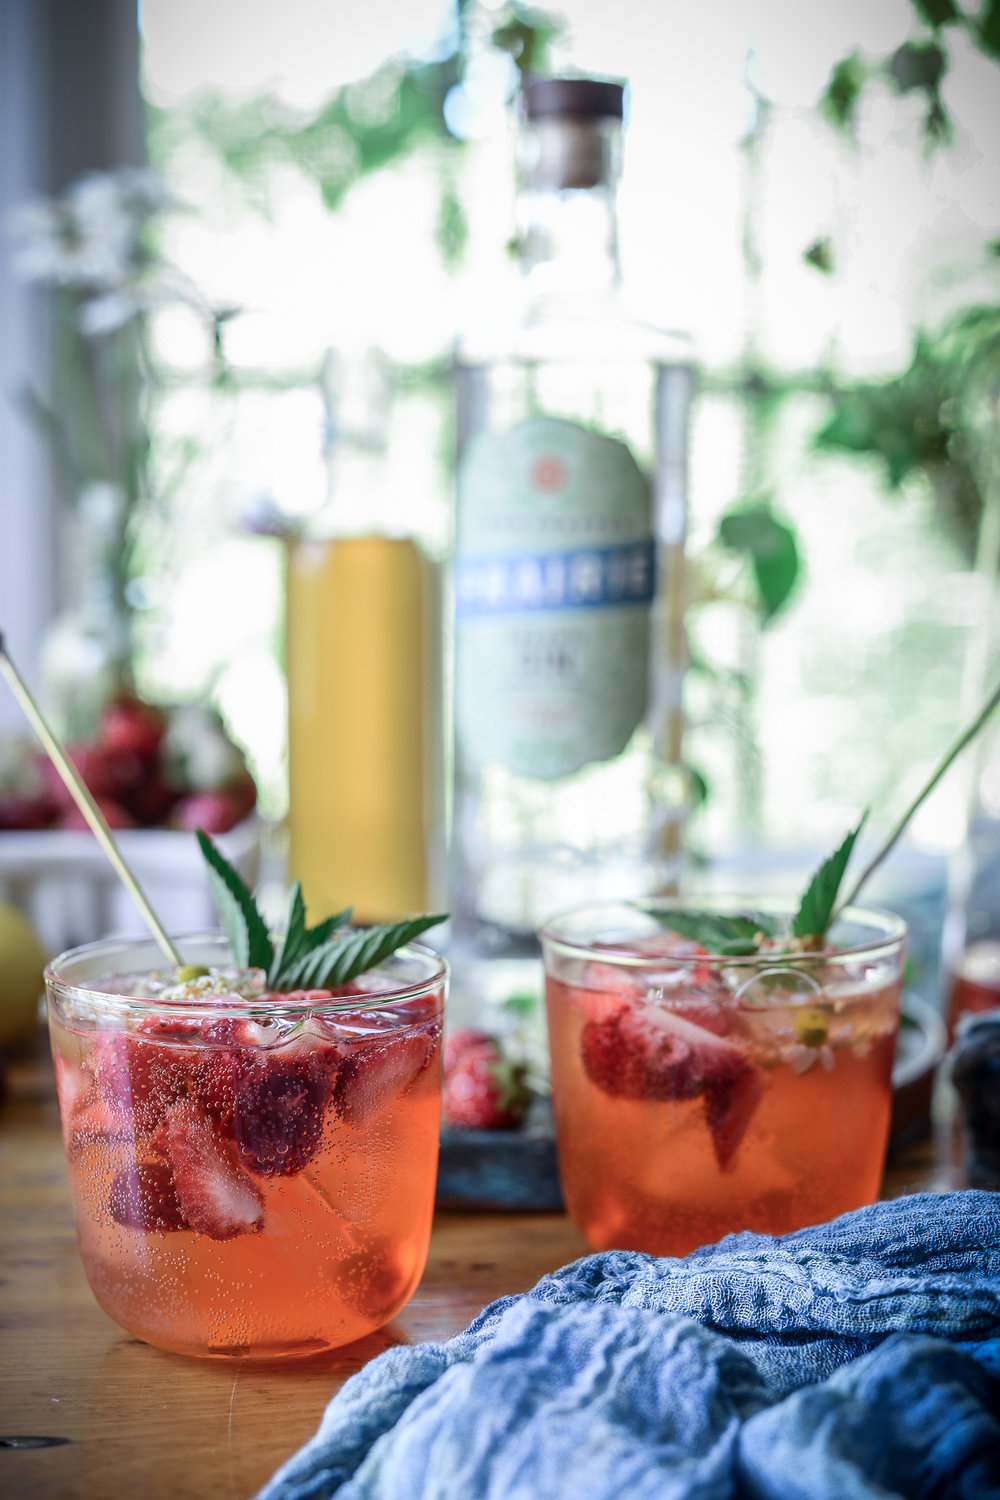 strawberry-gin-smash-14.jpg